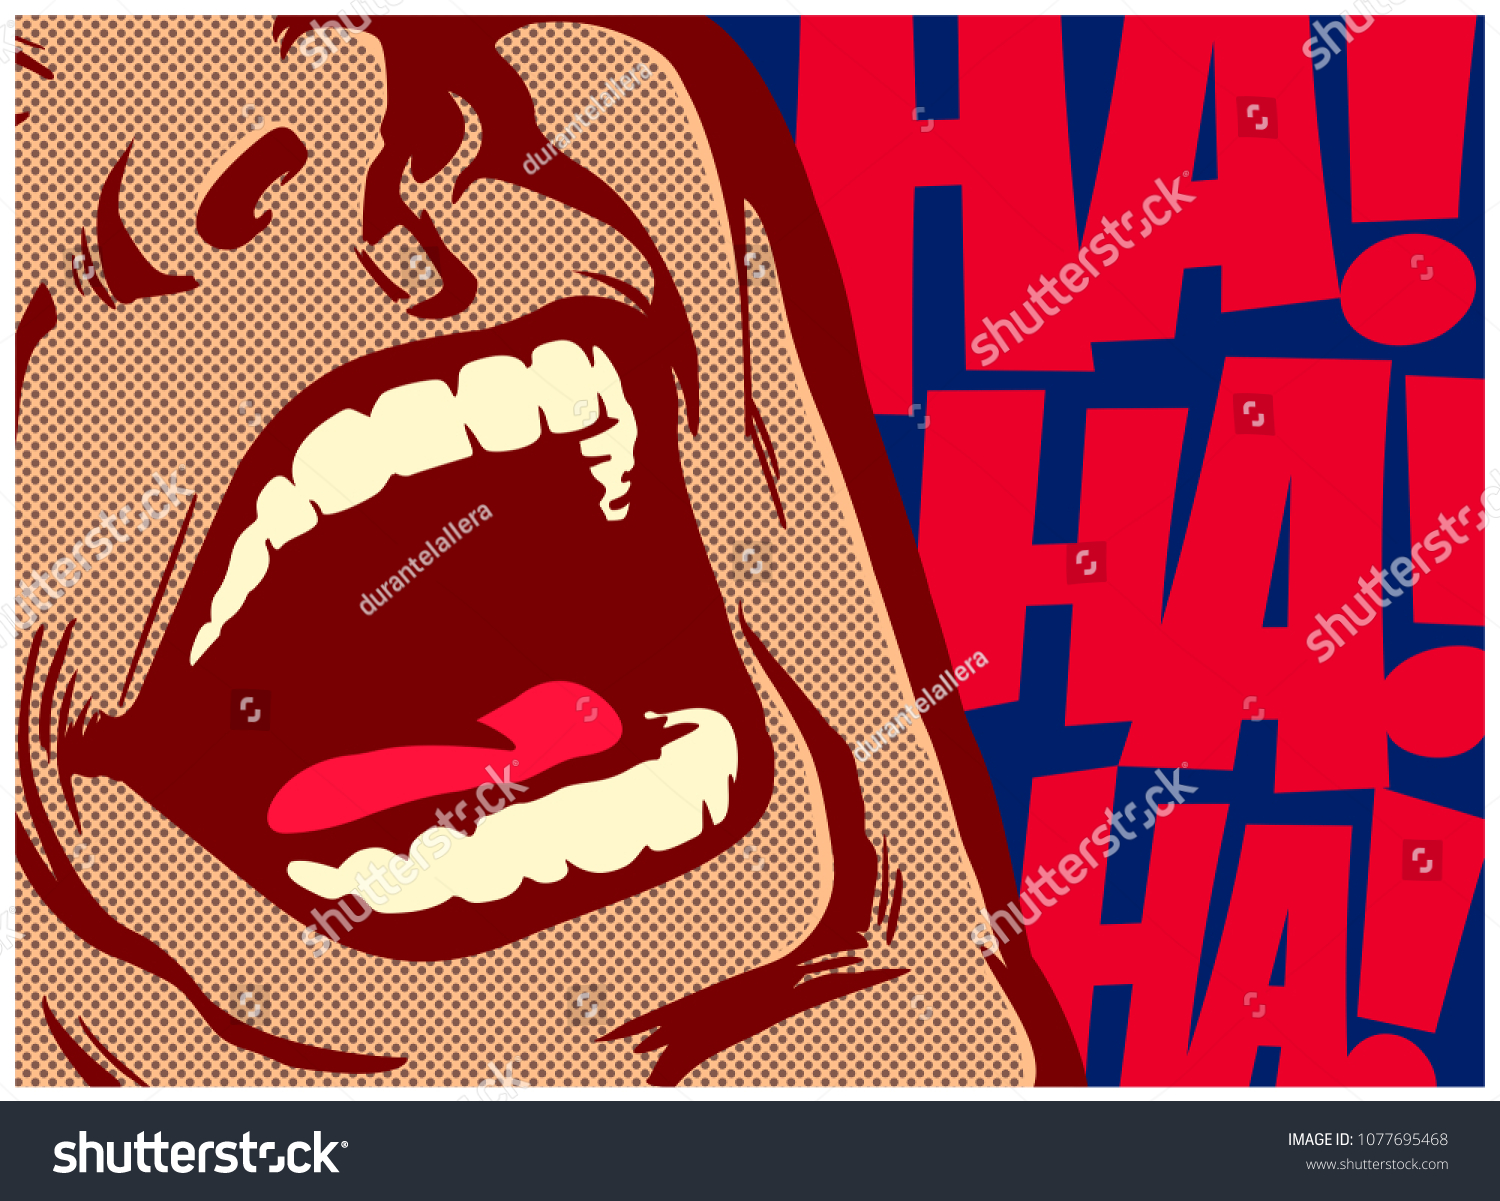 stock-vector-pop-art-style-comics-panel-mouth-of-man-laughing-out-loud-comedy-lol-vector-illustration-1077695468